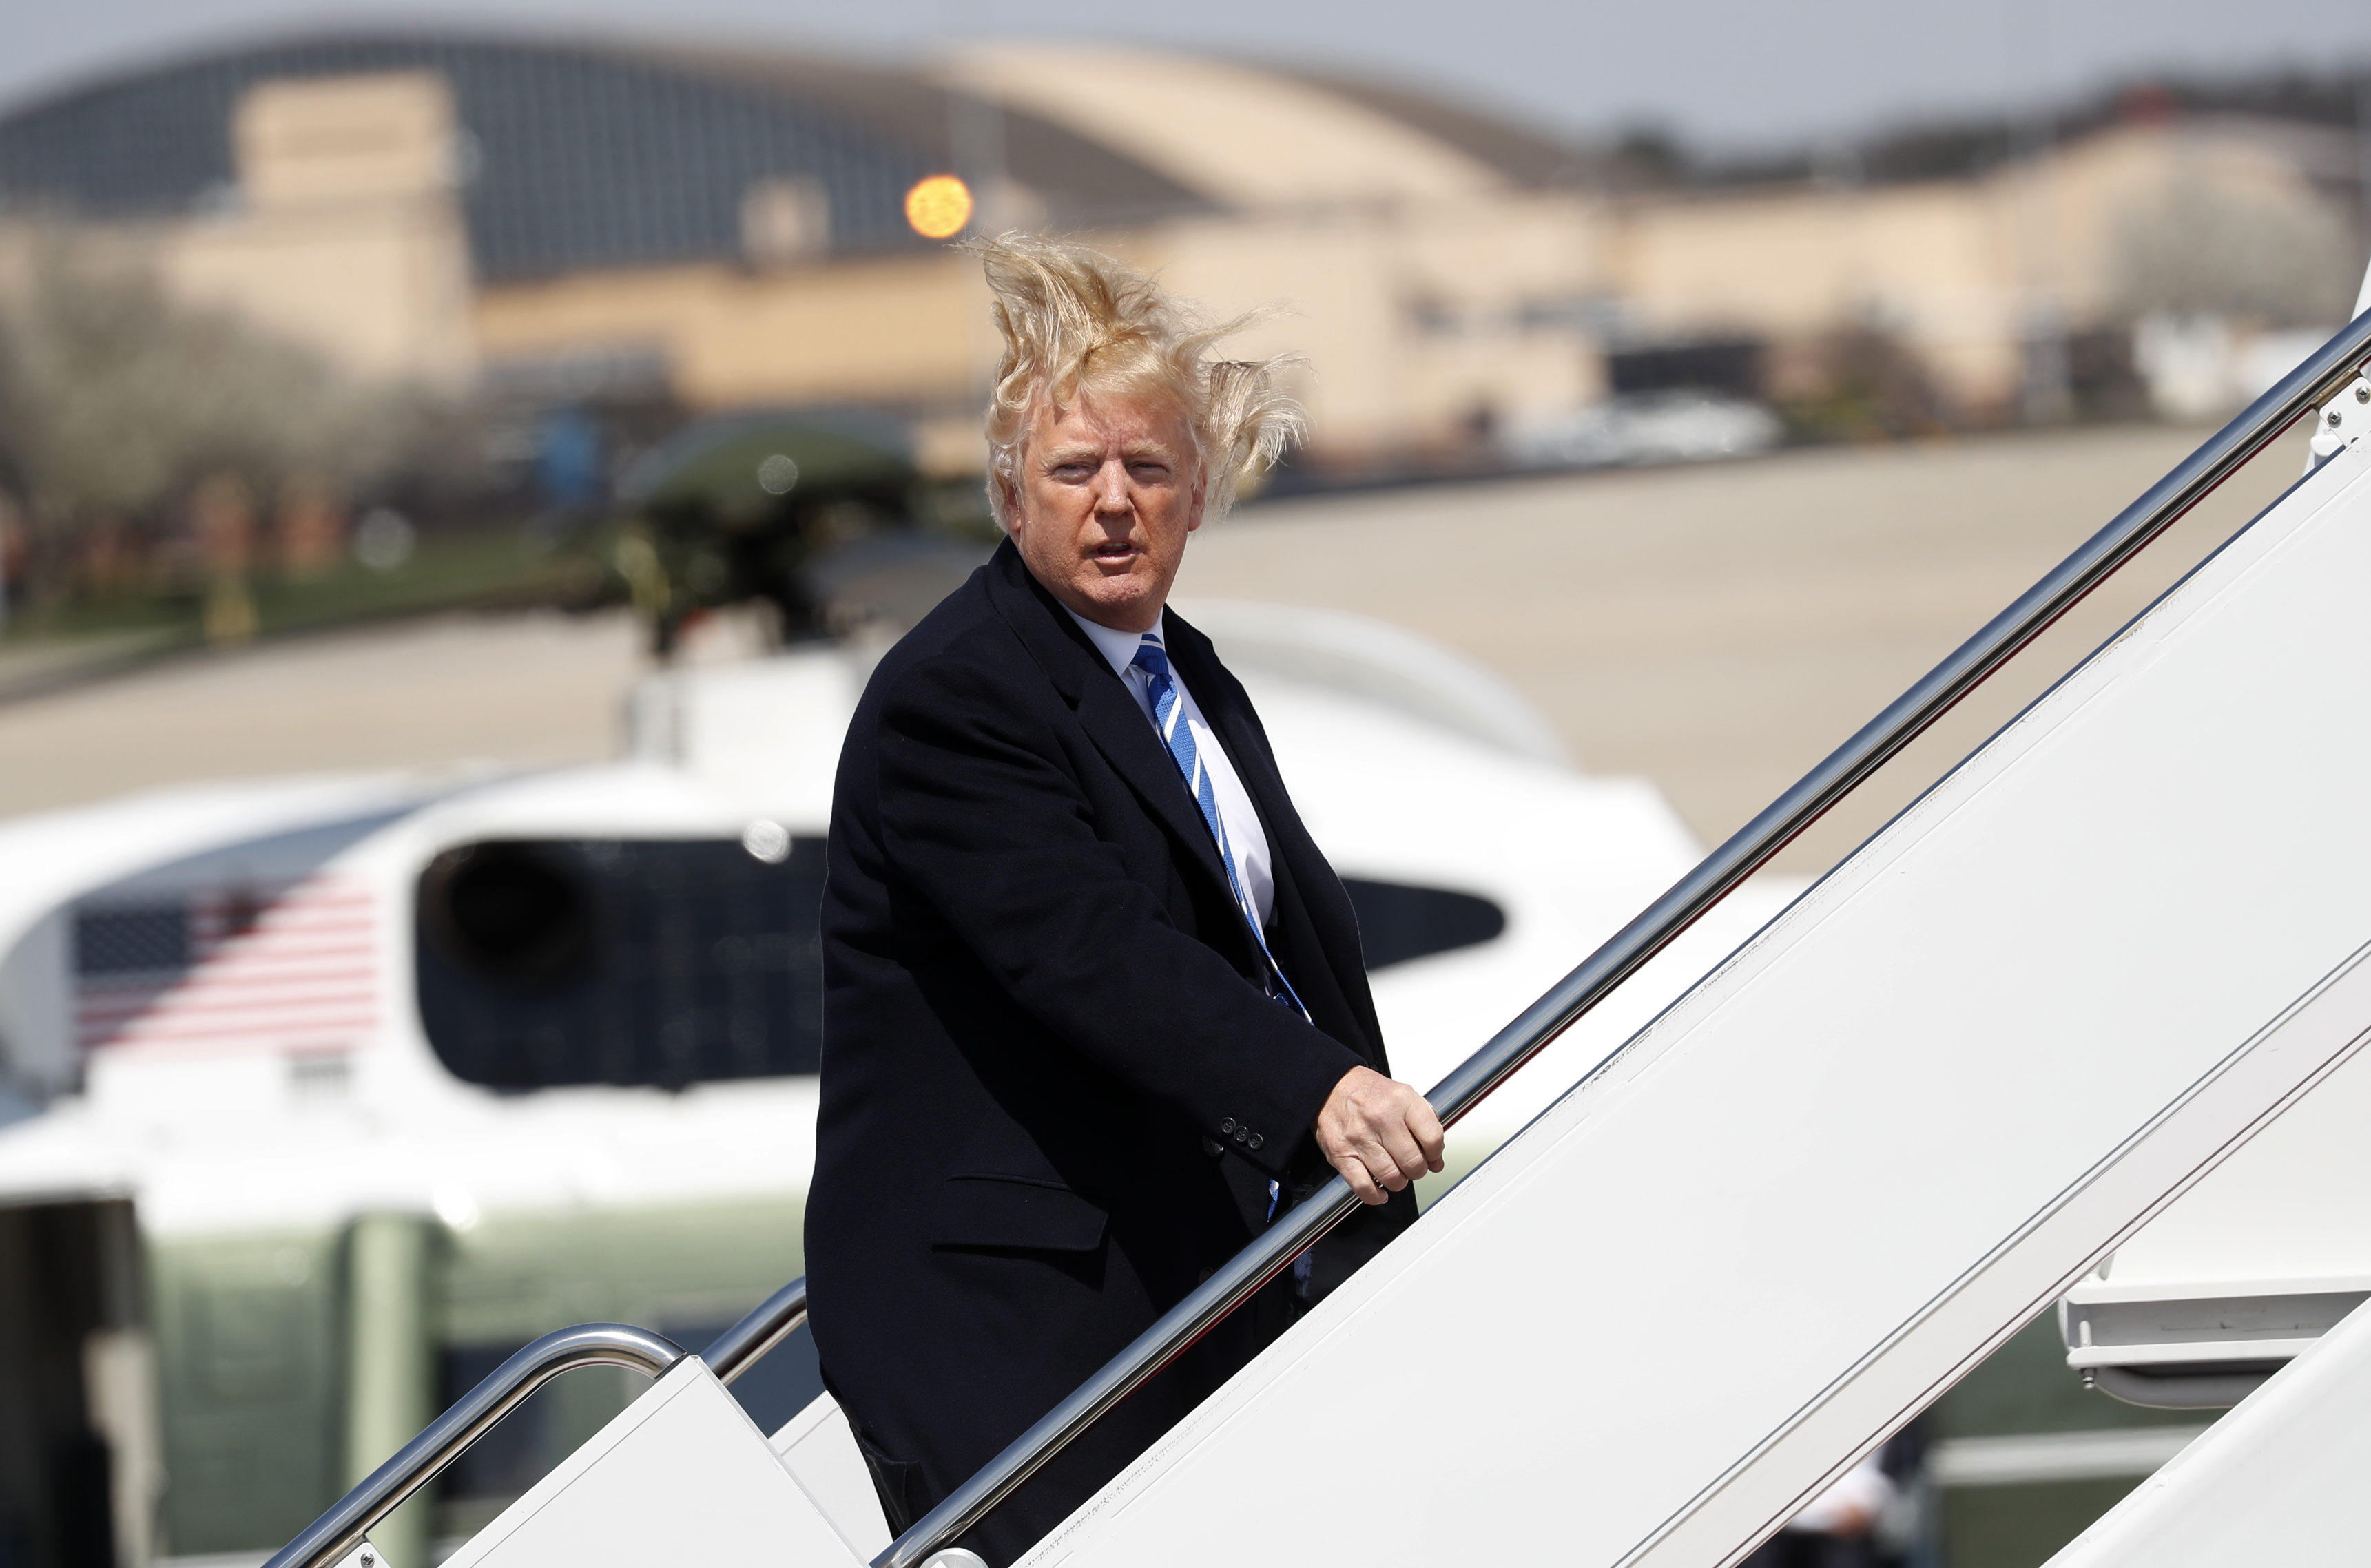 U.S. President Donald Trump yells over to members of the news media as he boards Air Force One on a windy day at Joint Base Andrews, Maryland before departing en route to an event in West Virginia, U.S., April 5, 2018. (REUTERS/Kevin Lamarque)